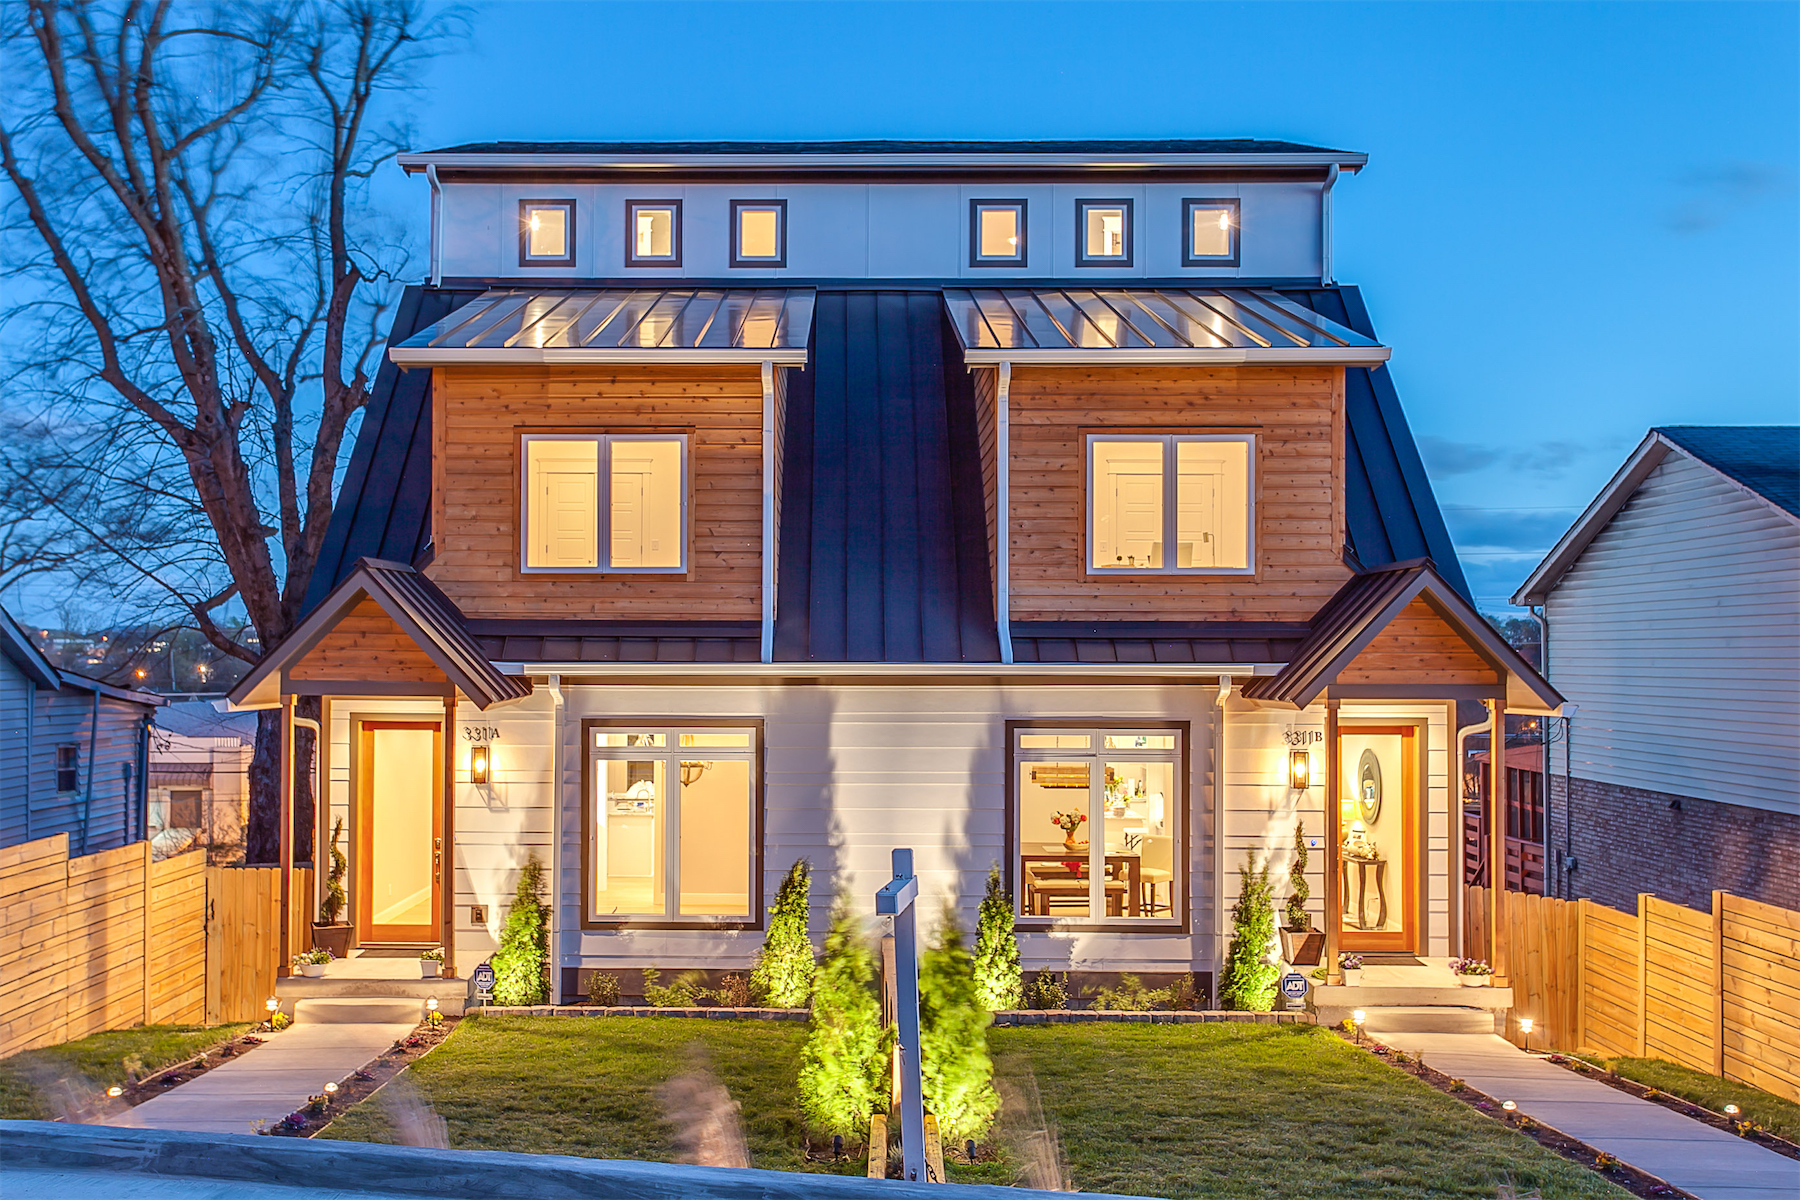 Single Family Home for Sale at Extraordinary Custom Home with Downtown Views 3311A Felicia Street Nashville, Tennessee, 37209 United States